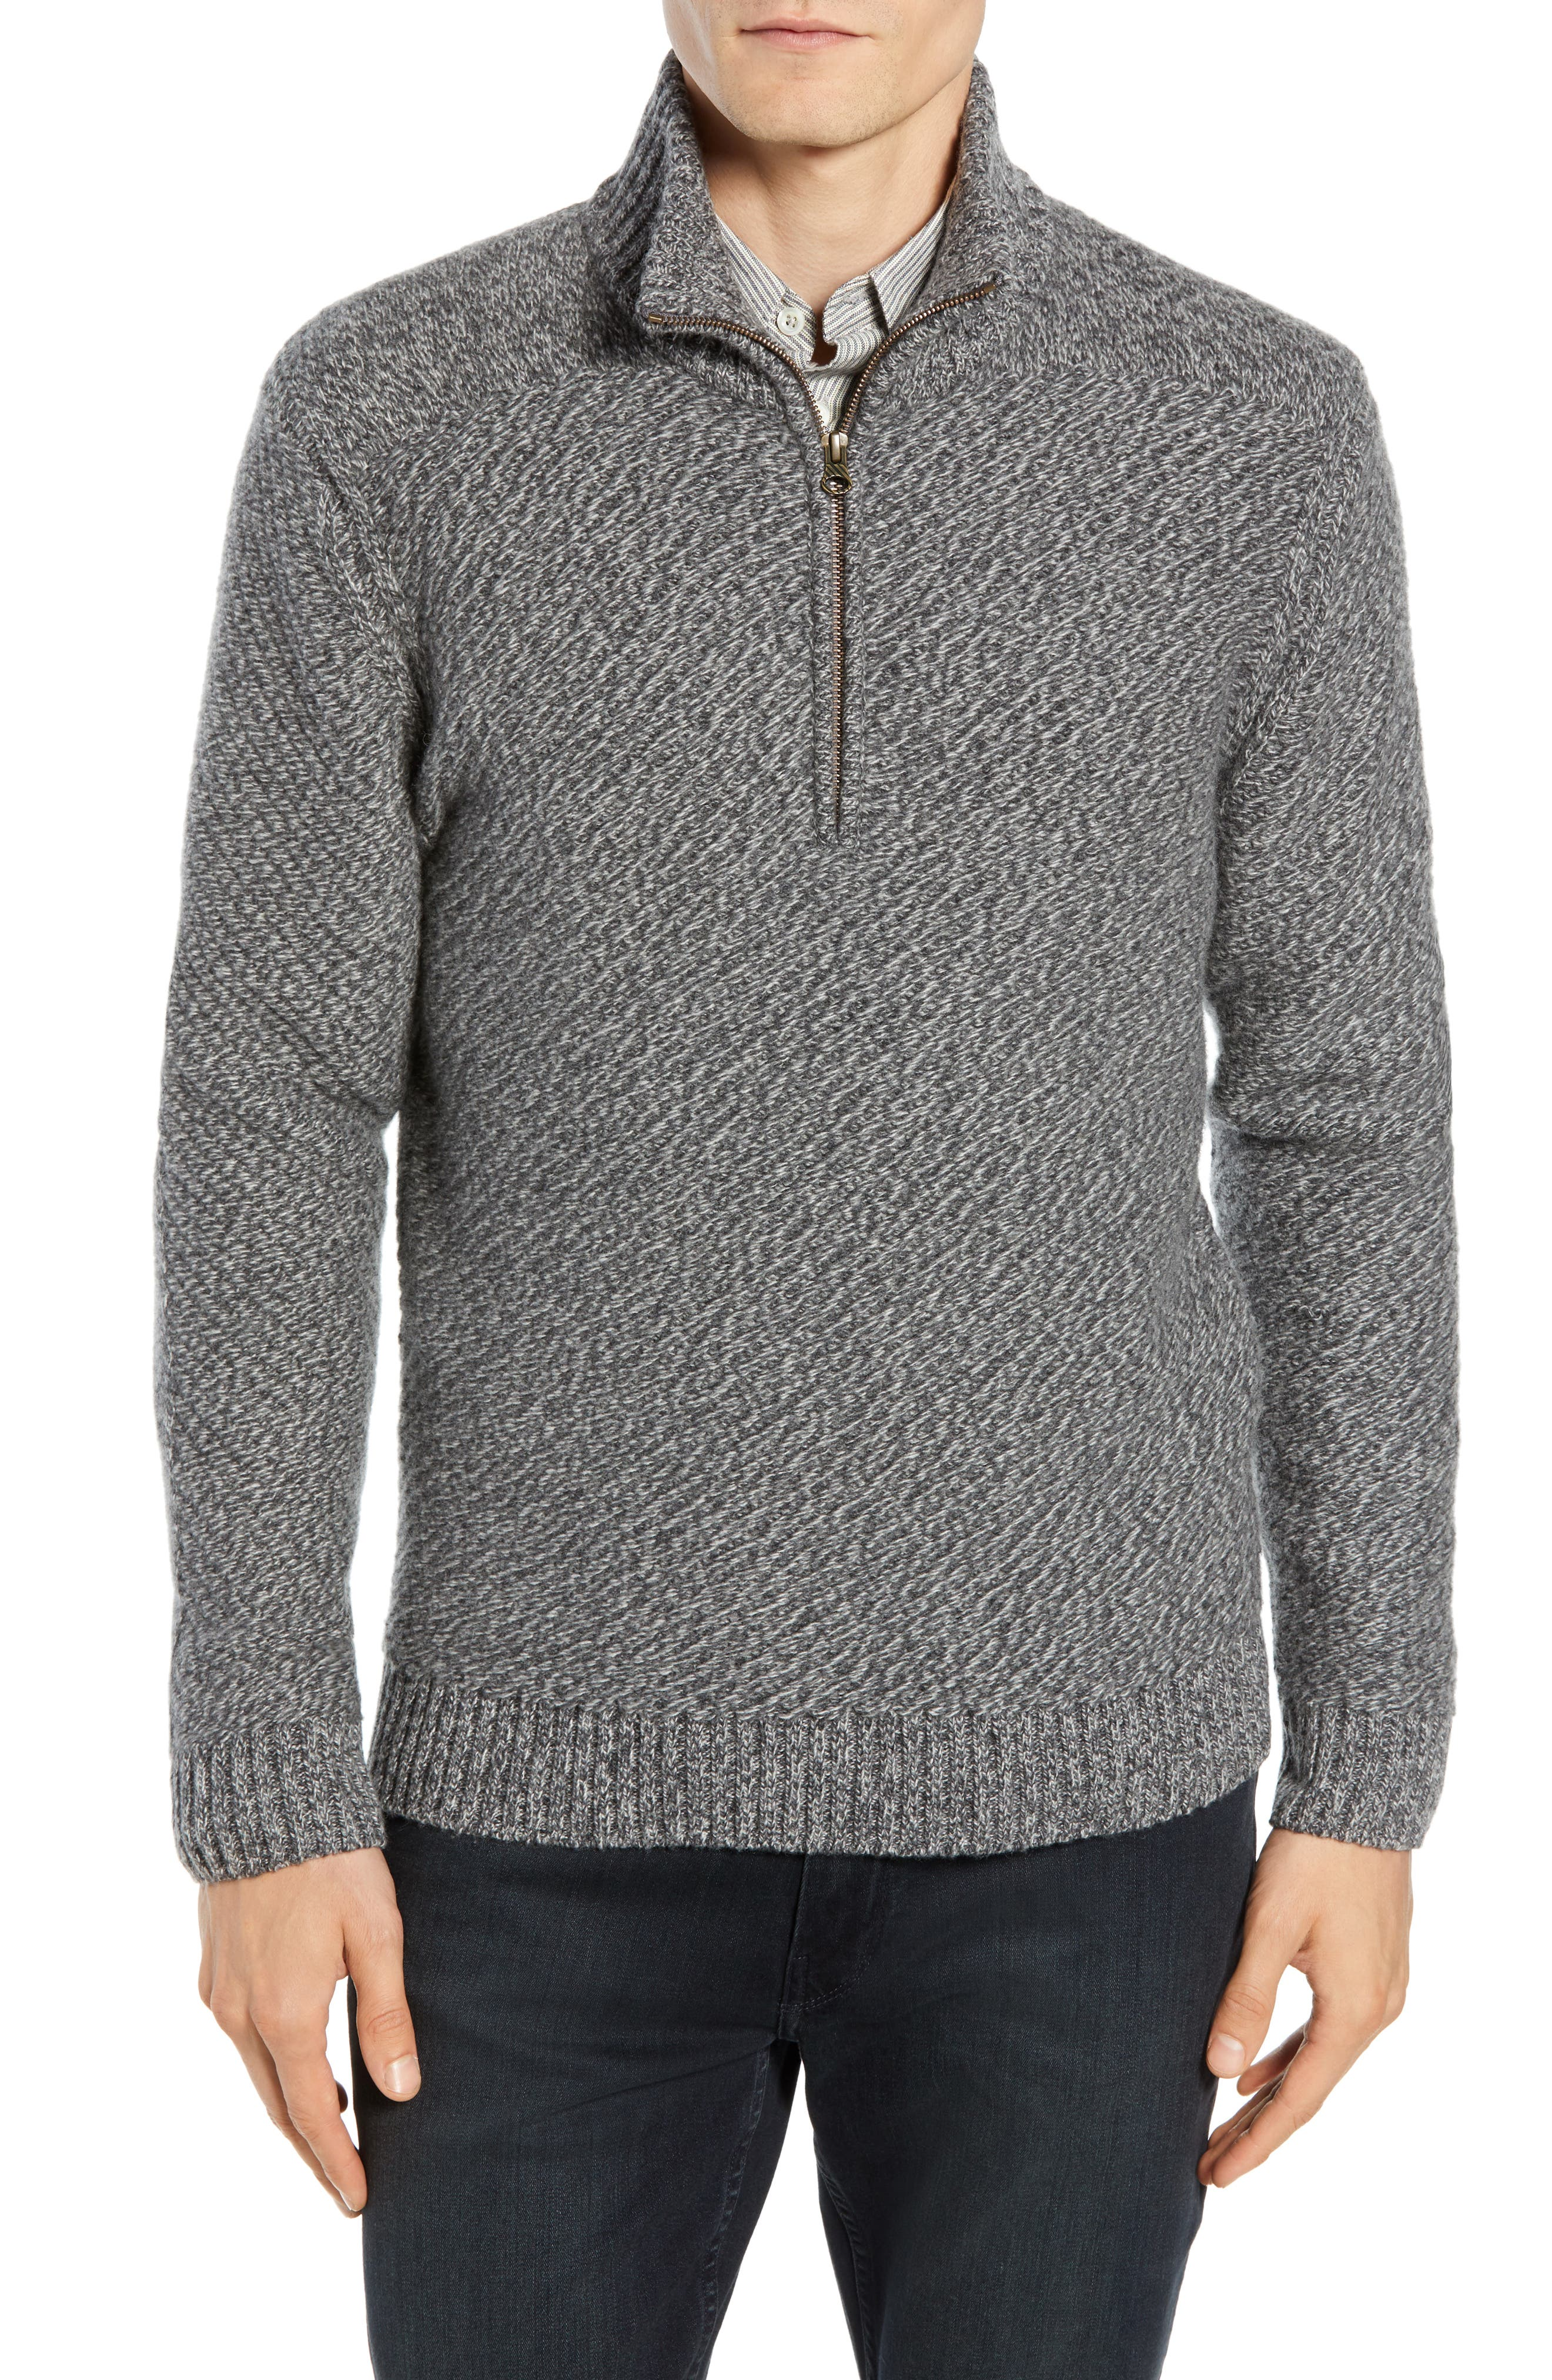 Cashmere Half Zip Sweater,                             Main thumbnail 1, color,                             CHARCOAL